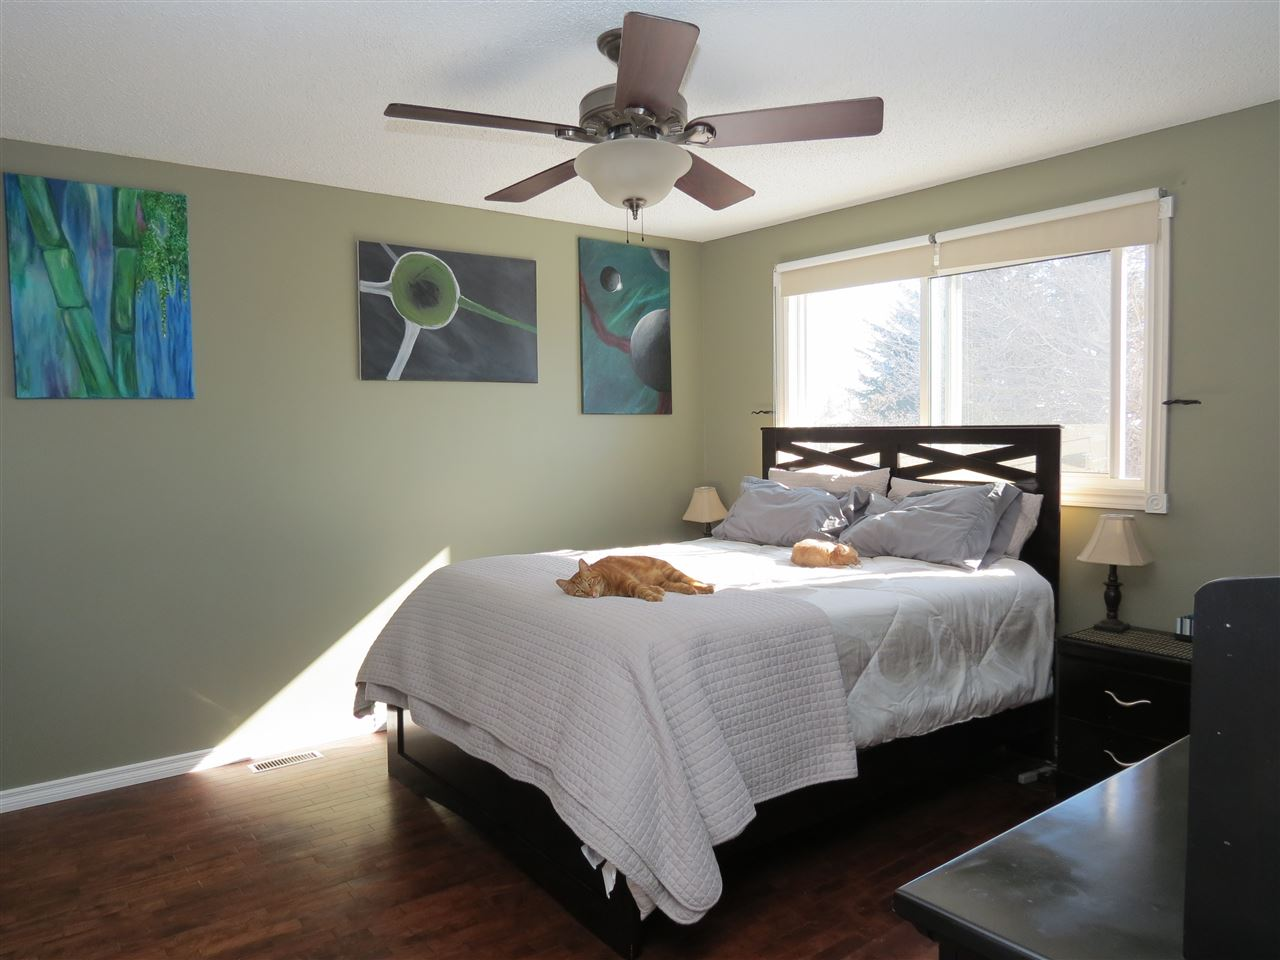 Photo 14: 69 Prospect Place: Cardiff House for sale : MLS® # E4059588